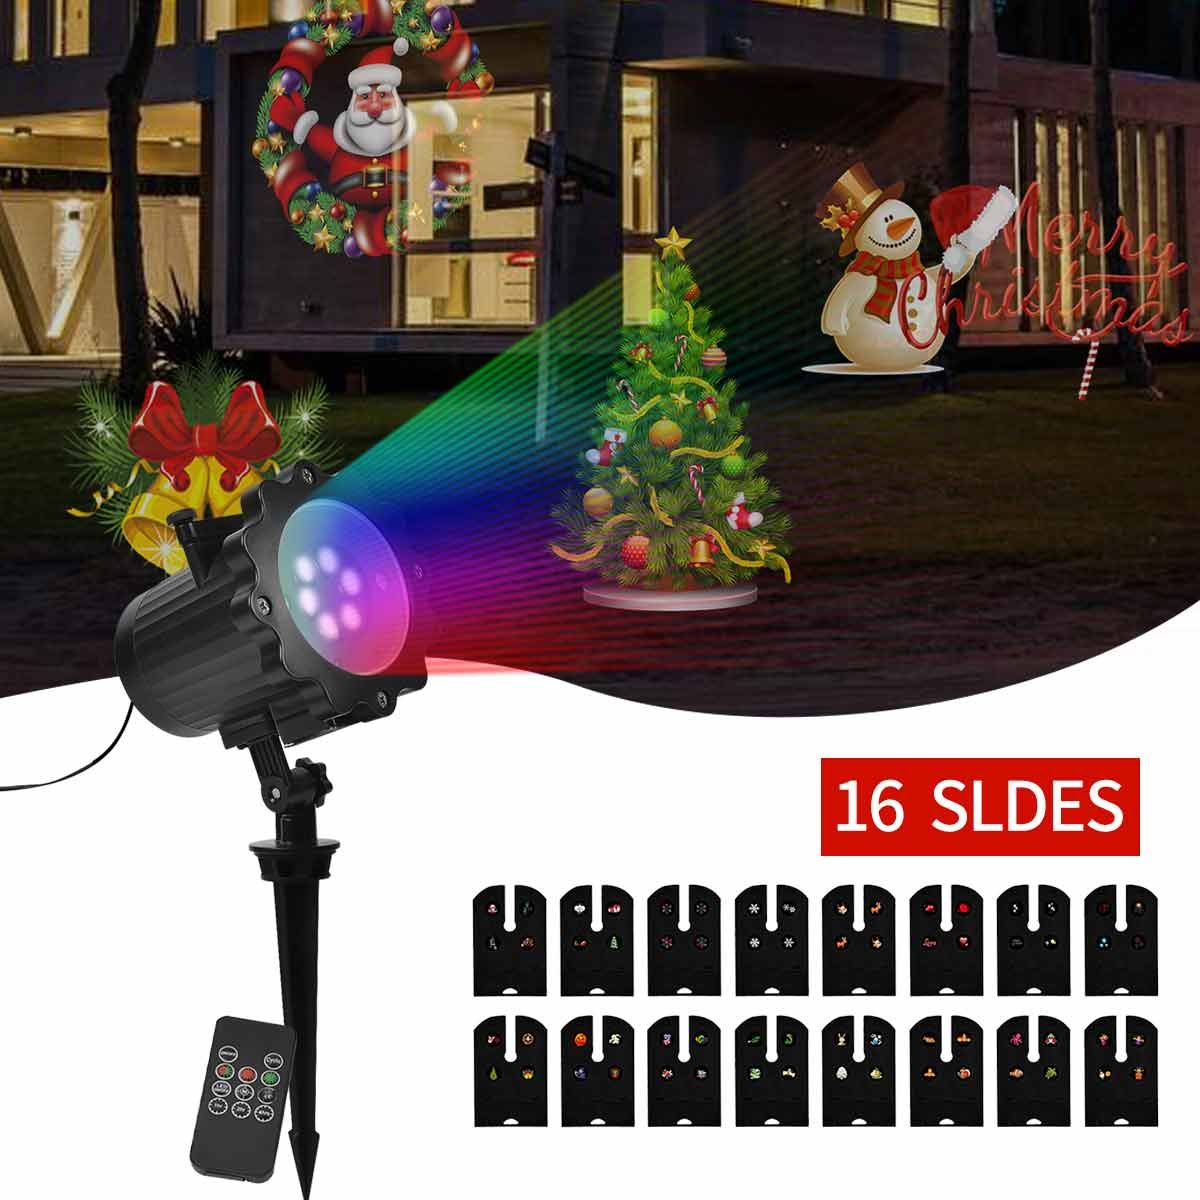 Christmas Led Projector Lights, GOODAN 16 Pattern, Range 40ft Projection Distance Holiday Light Projector, IP65 Waterproof Landscape Garden LED Lights for Various Themes Halloween, Christmas, etc.